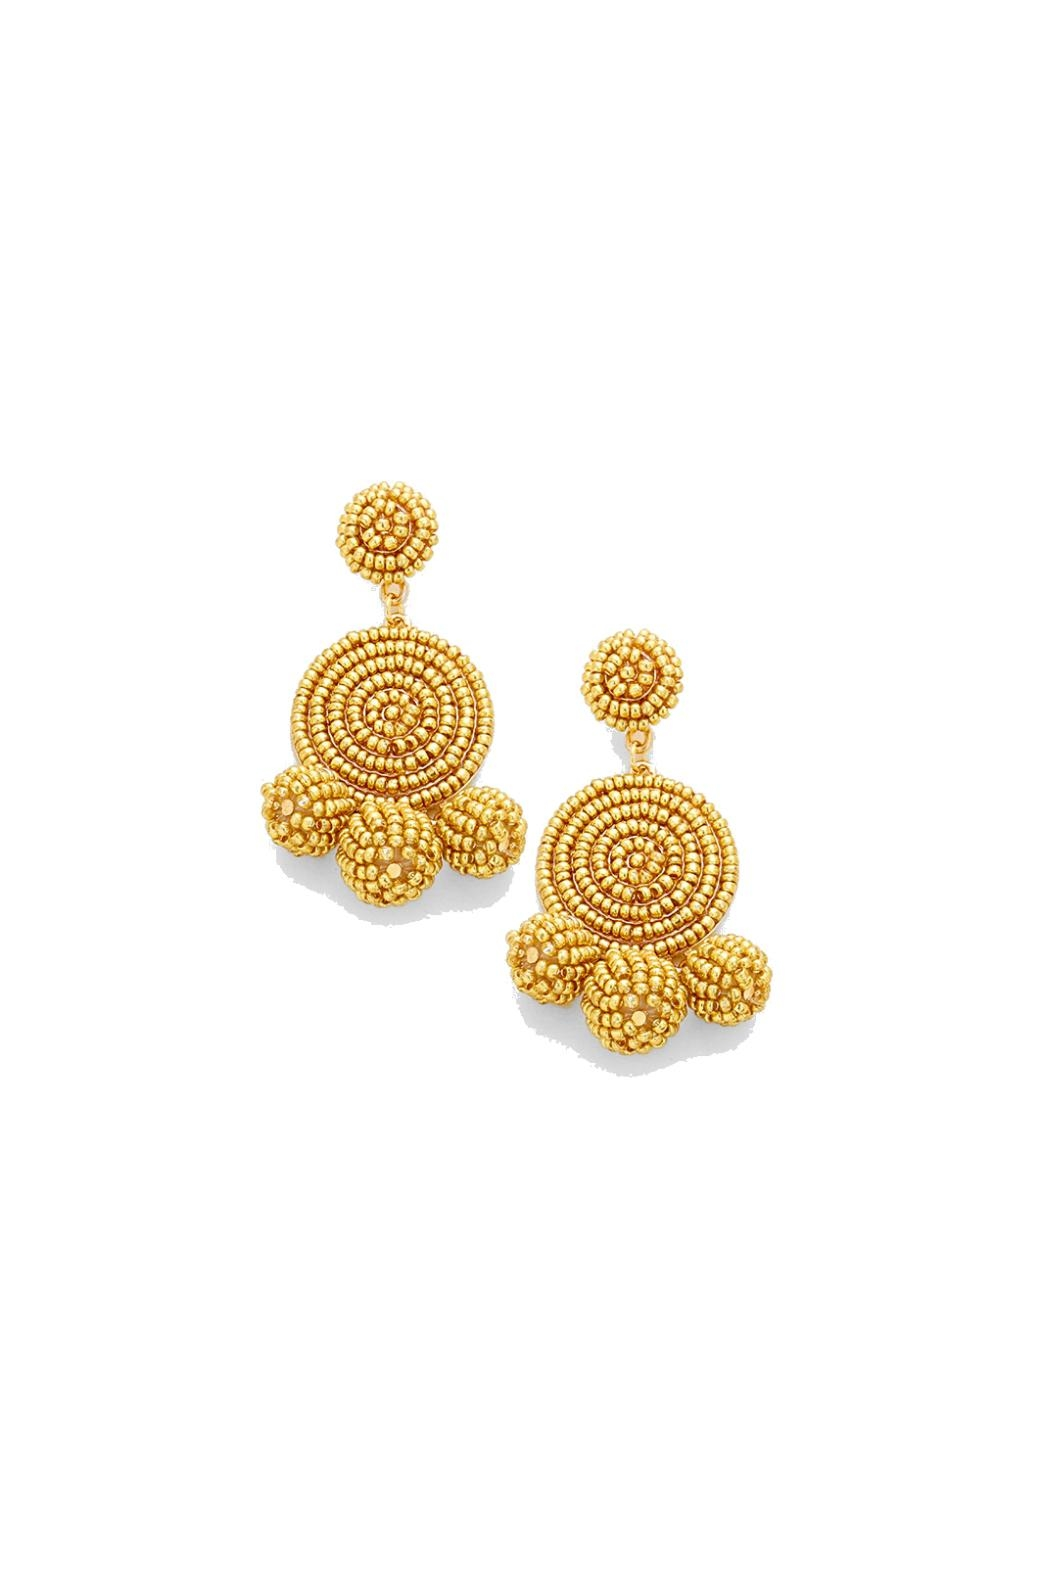 Gemma Collection Golden Beaded Earrings - Main Image